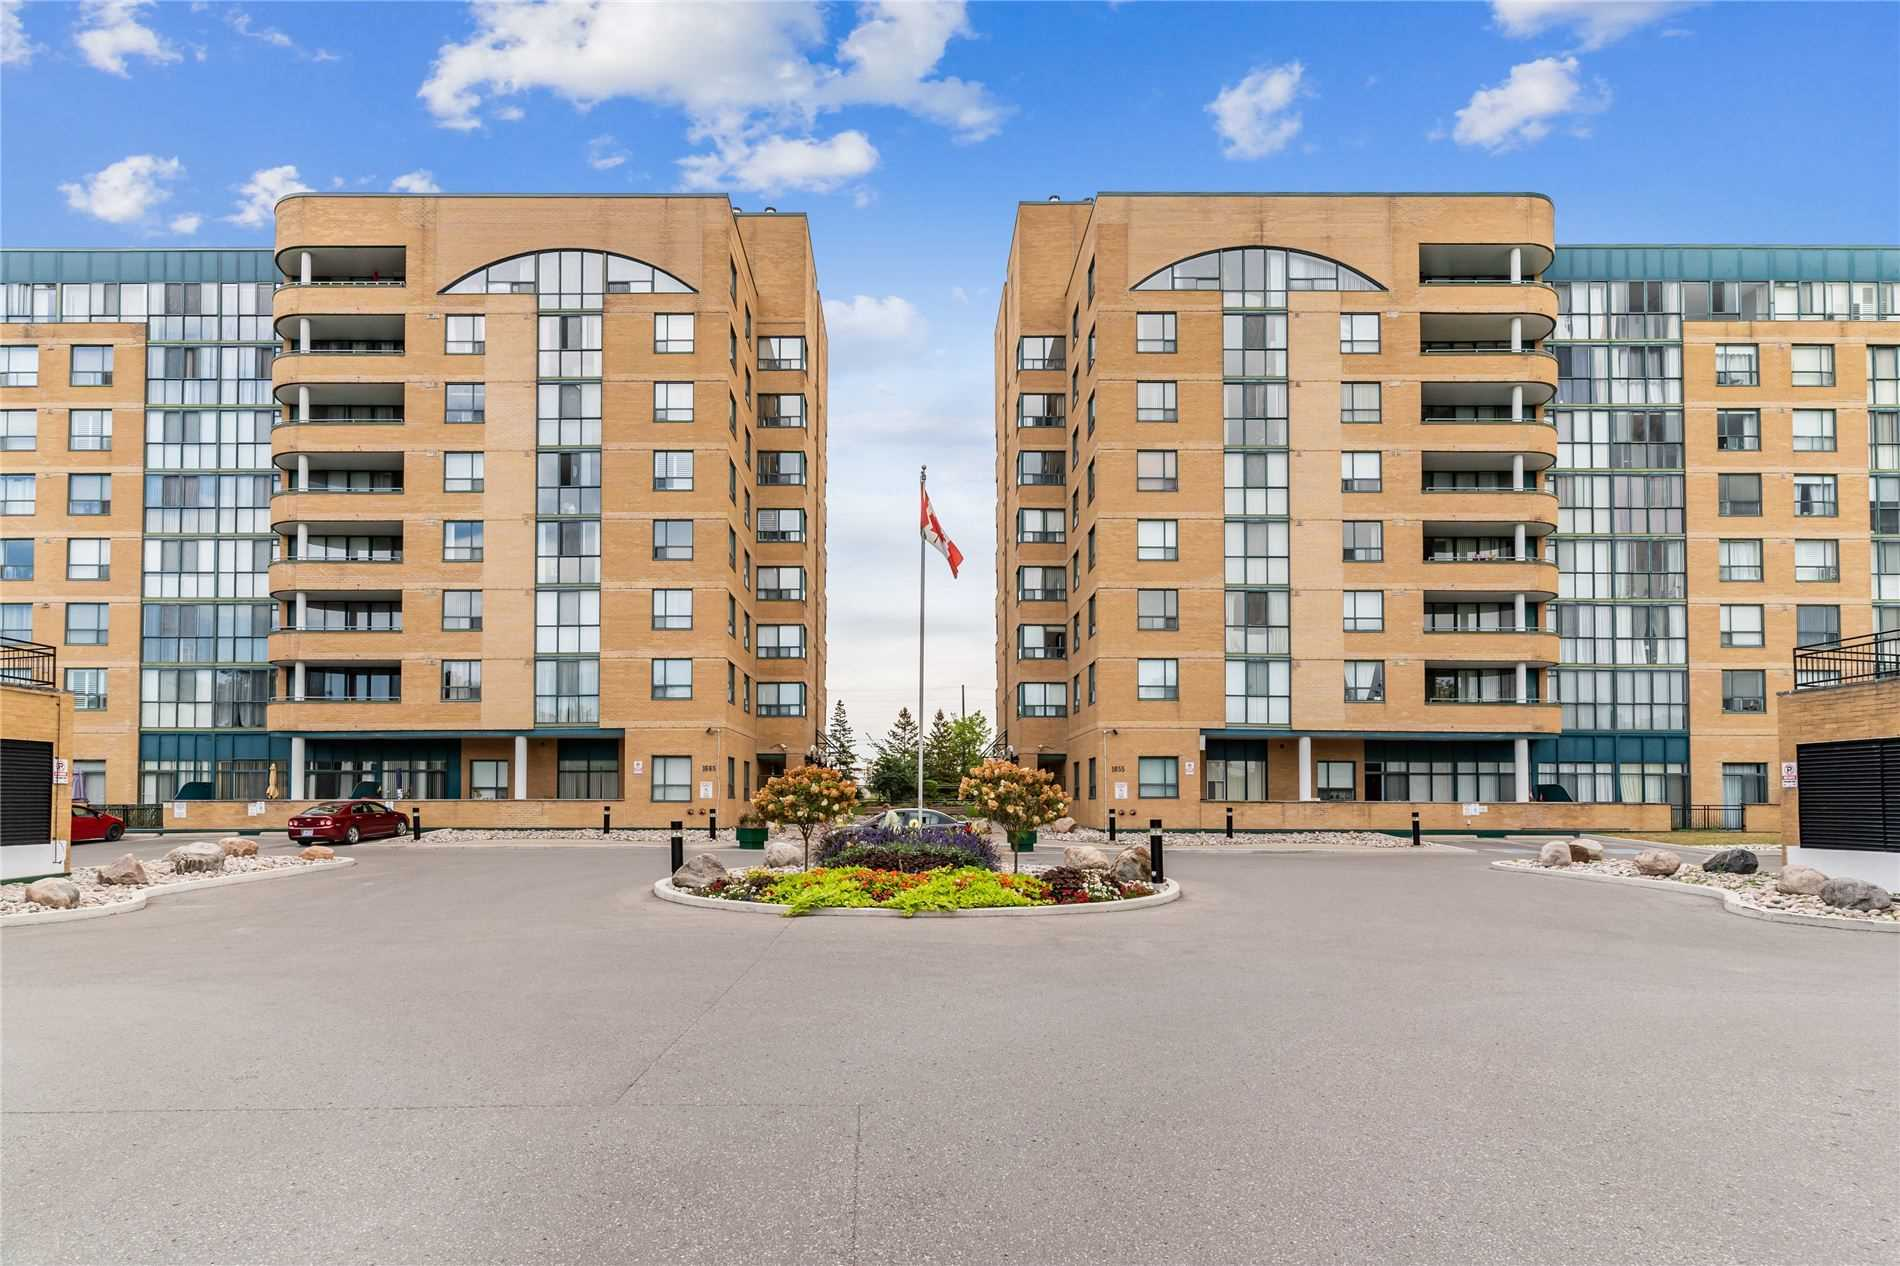 pictures of 1665 Pickering Pkwy, Pickering L1V6L4